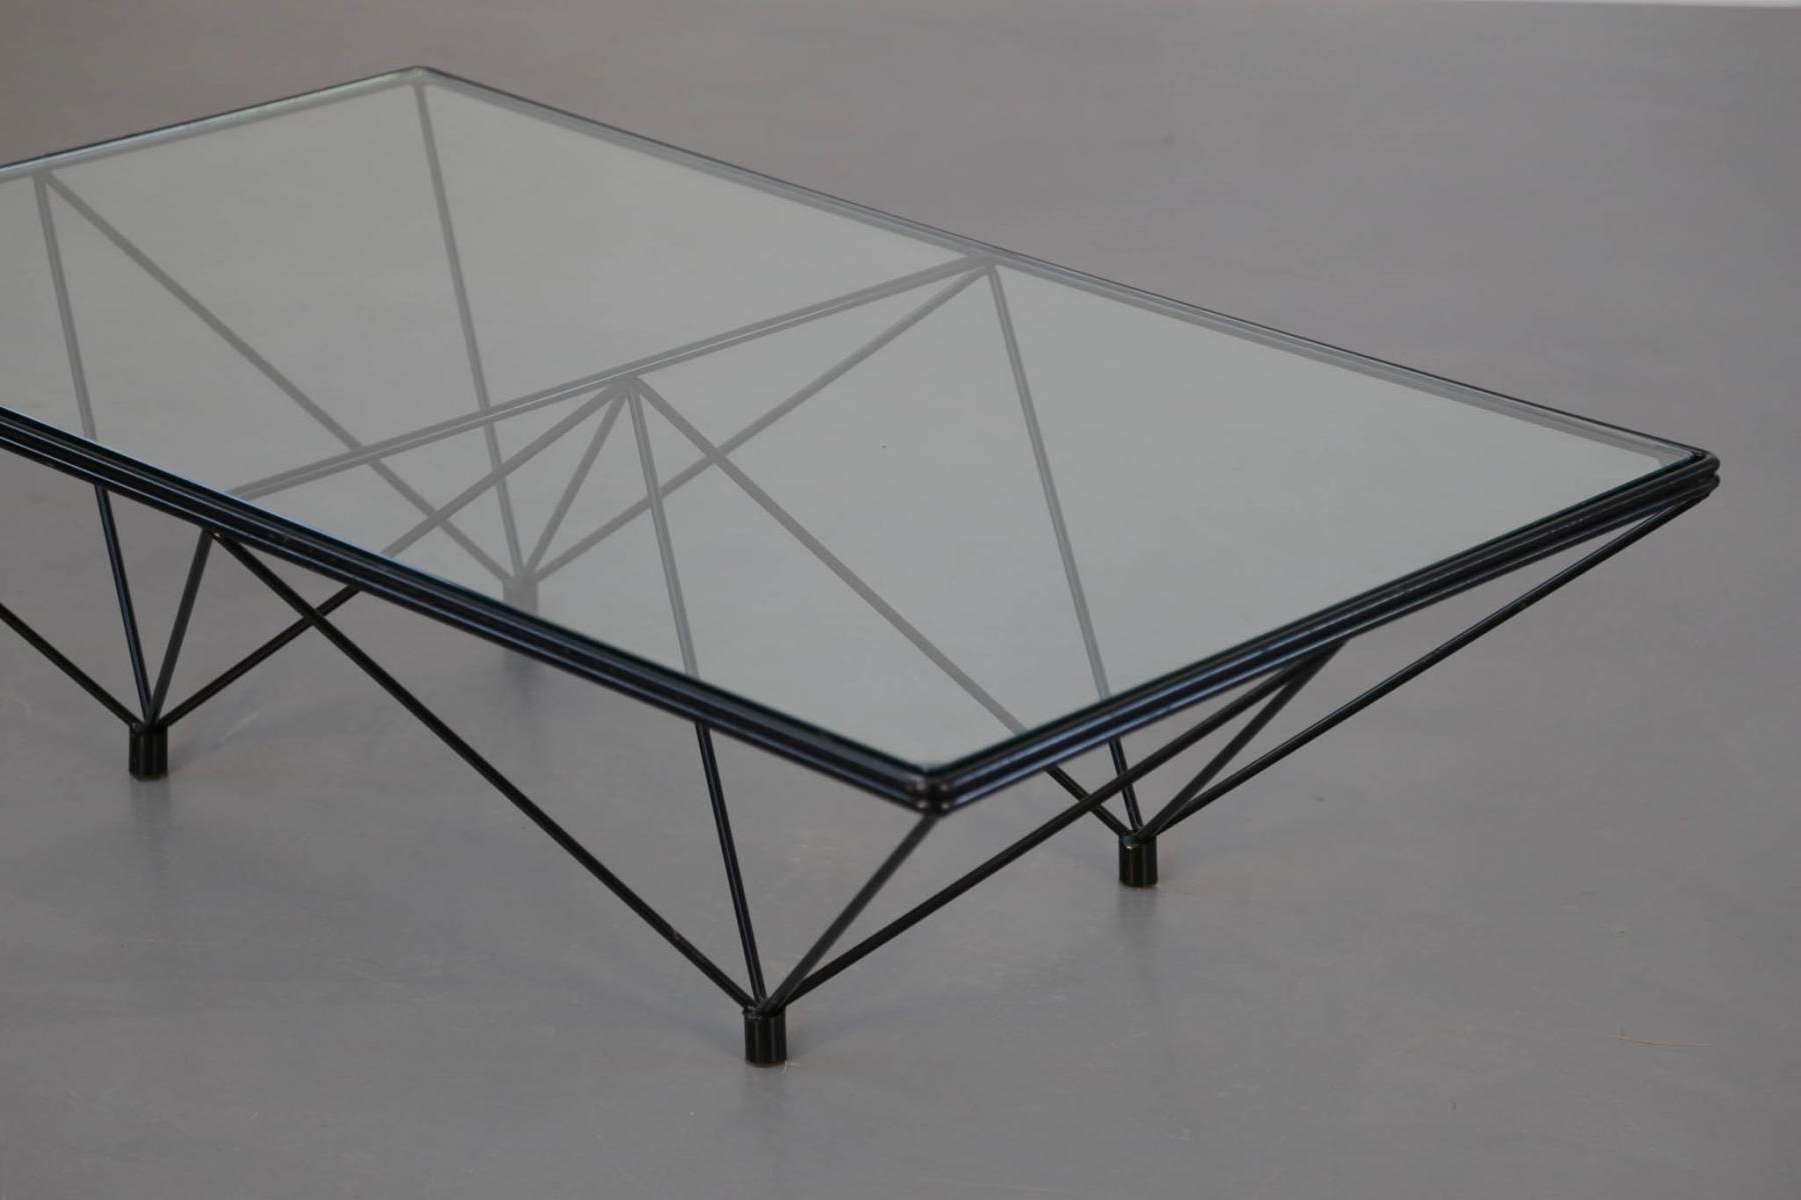 2017 Coffee Tables Glass And Metal Inside Coffee Tables : Chrome Glass End Tables Small Coffee Black Table (View 1 of 20)